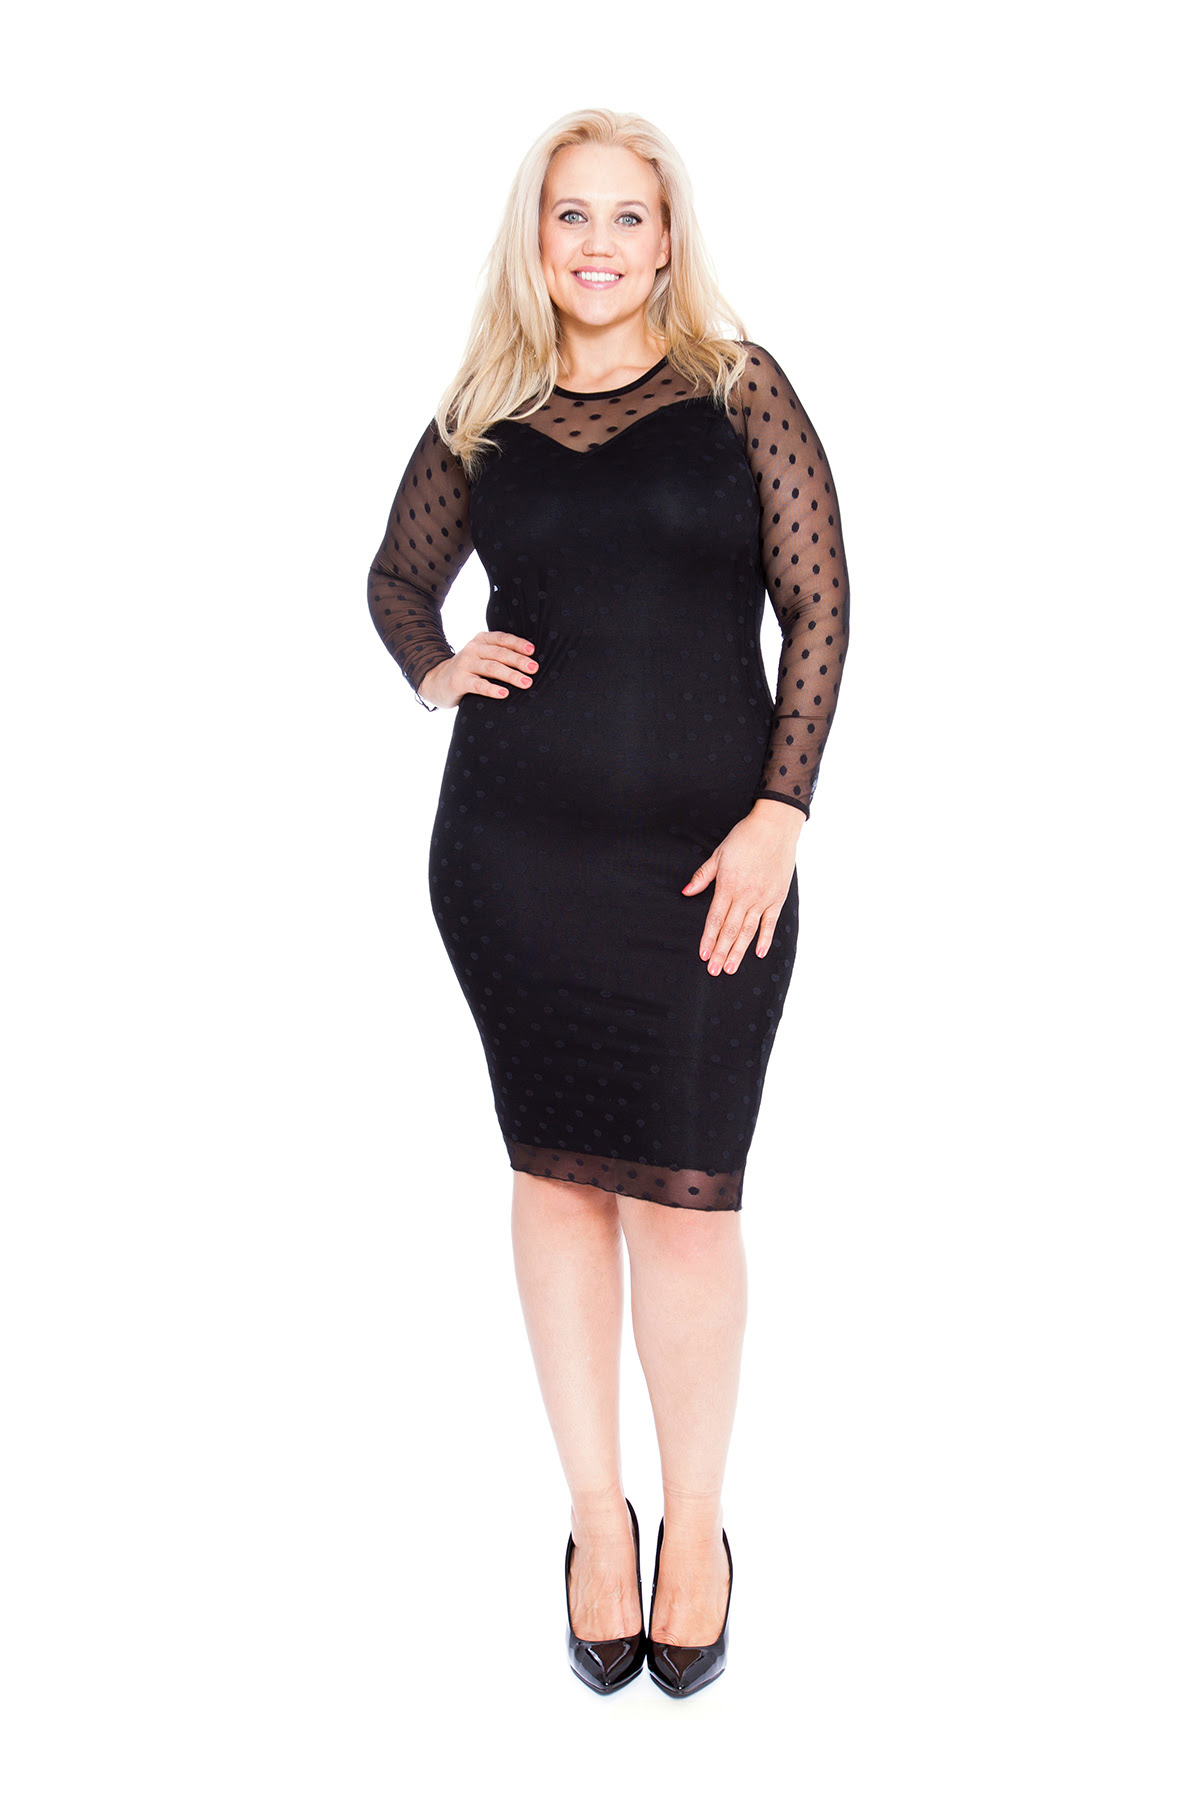 Plus bodycon size for dresses women in size